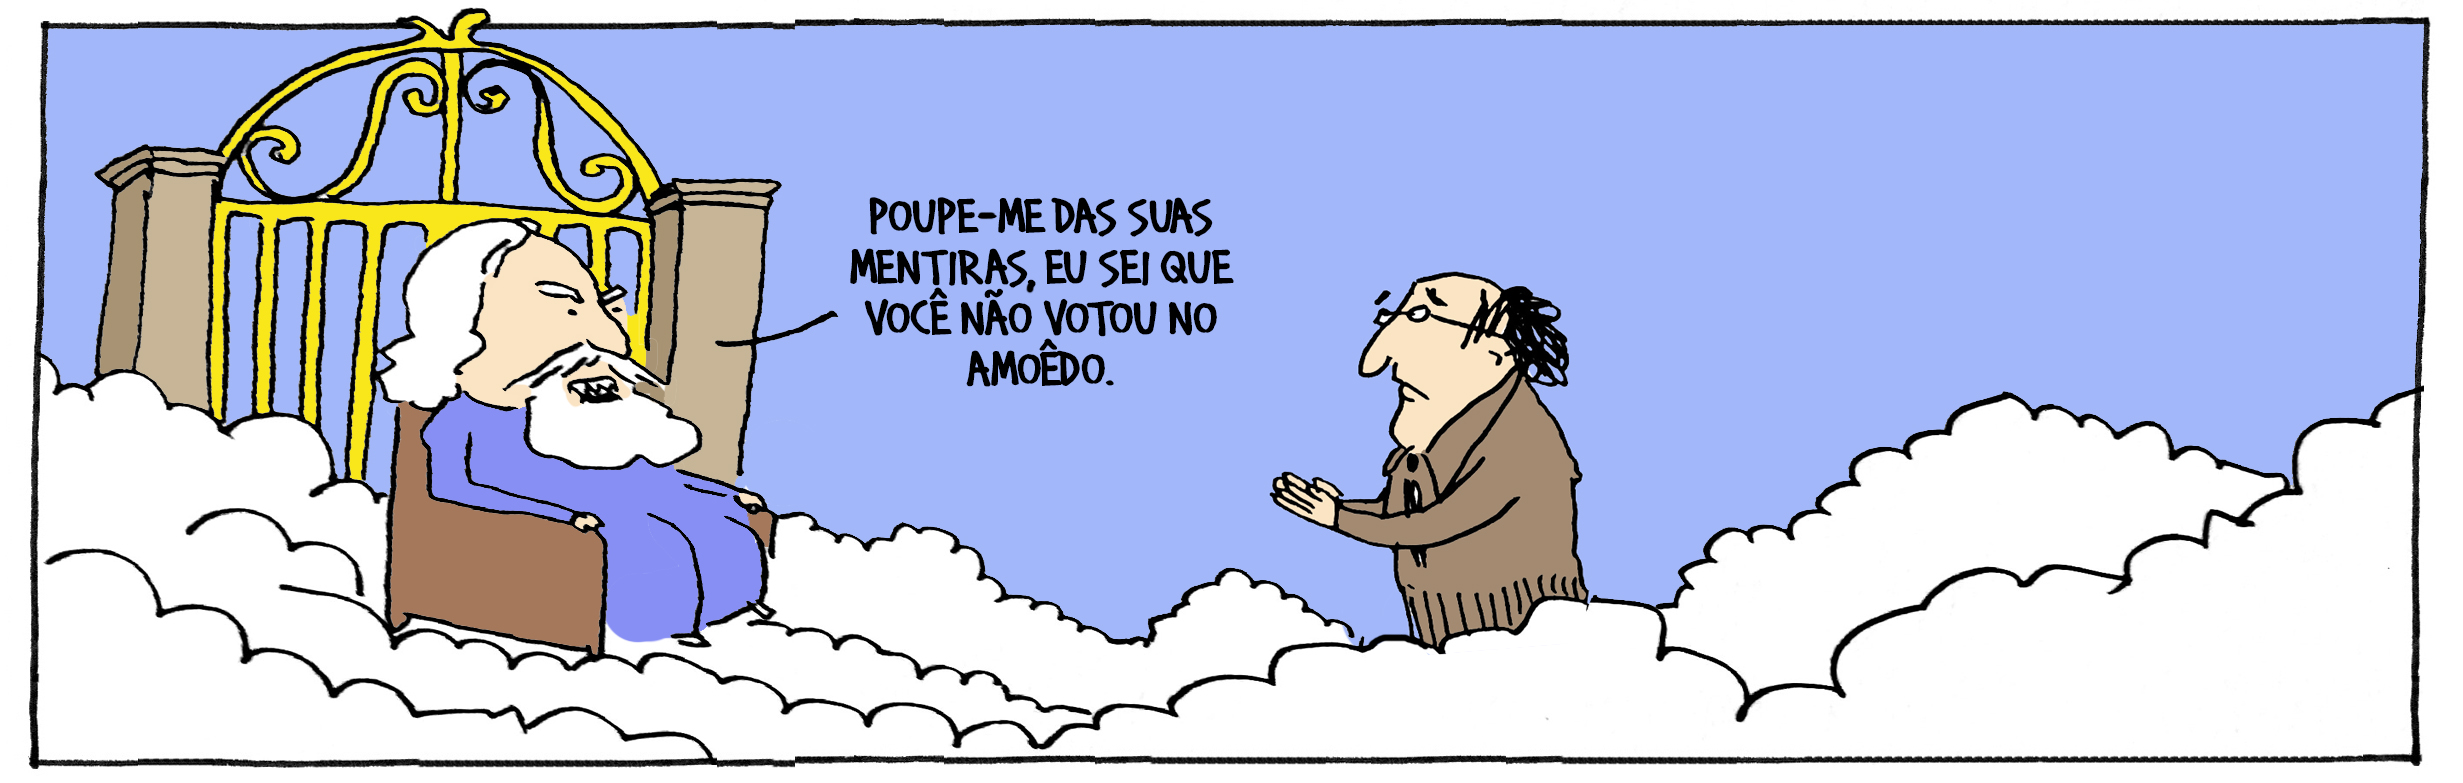 O eleitorado do Amoedo